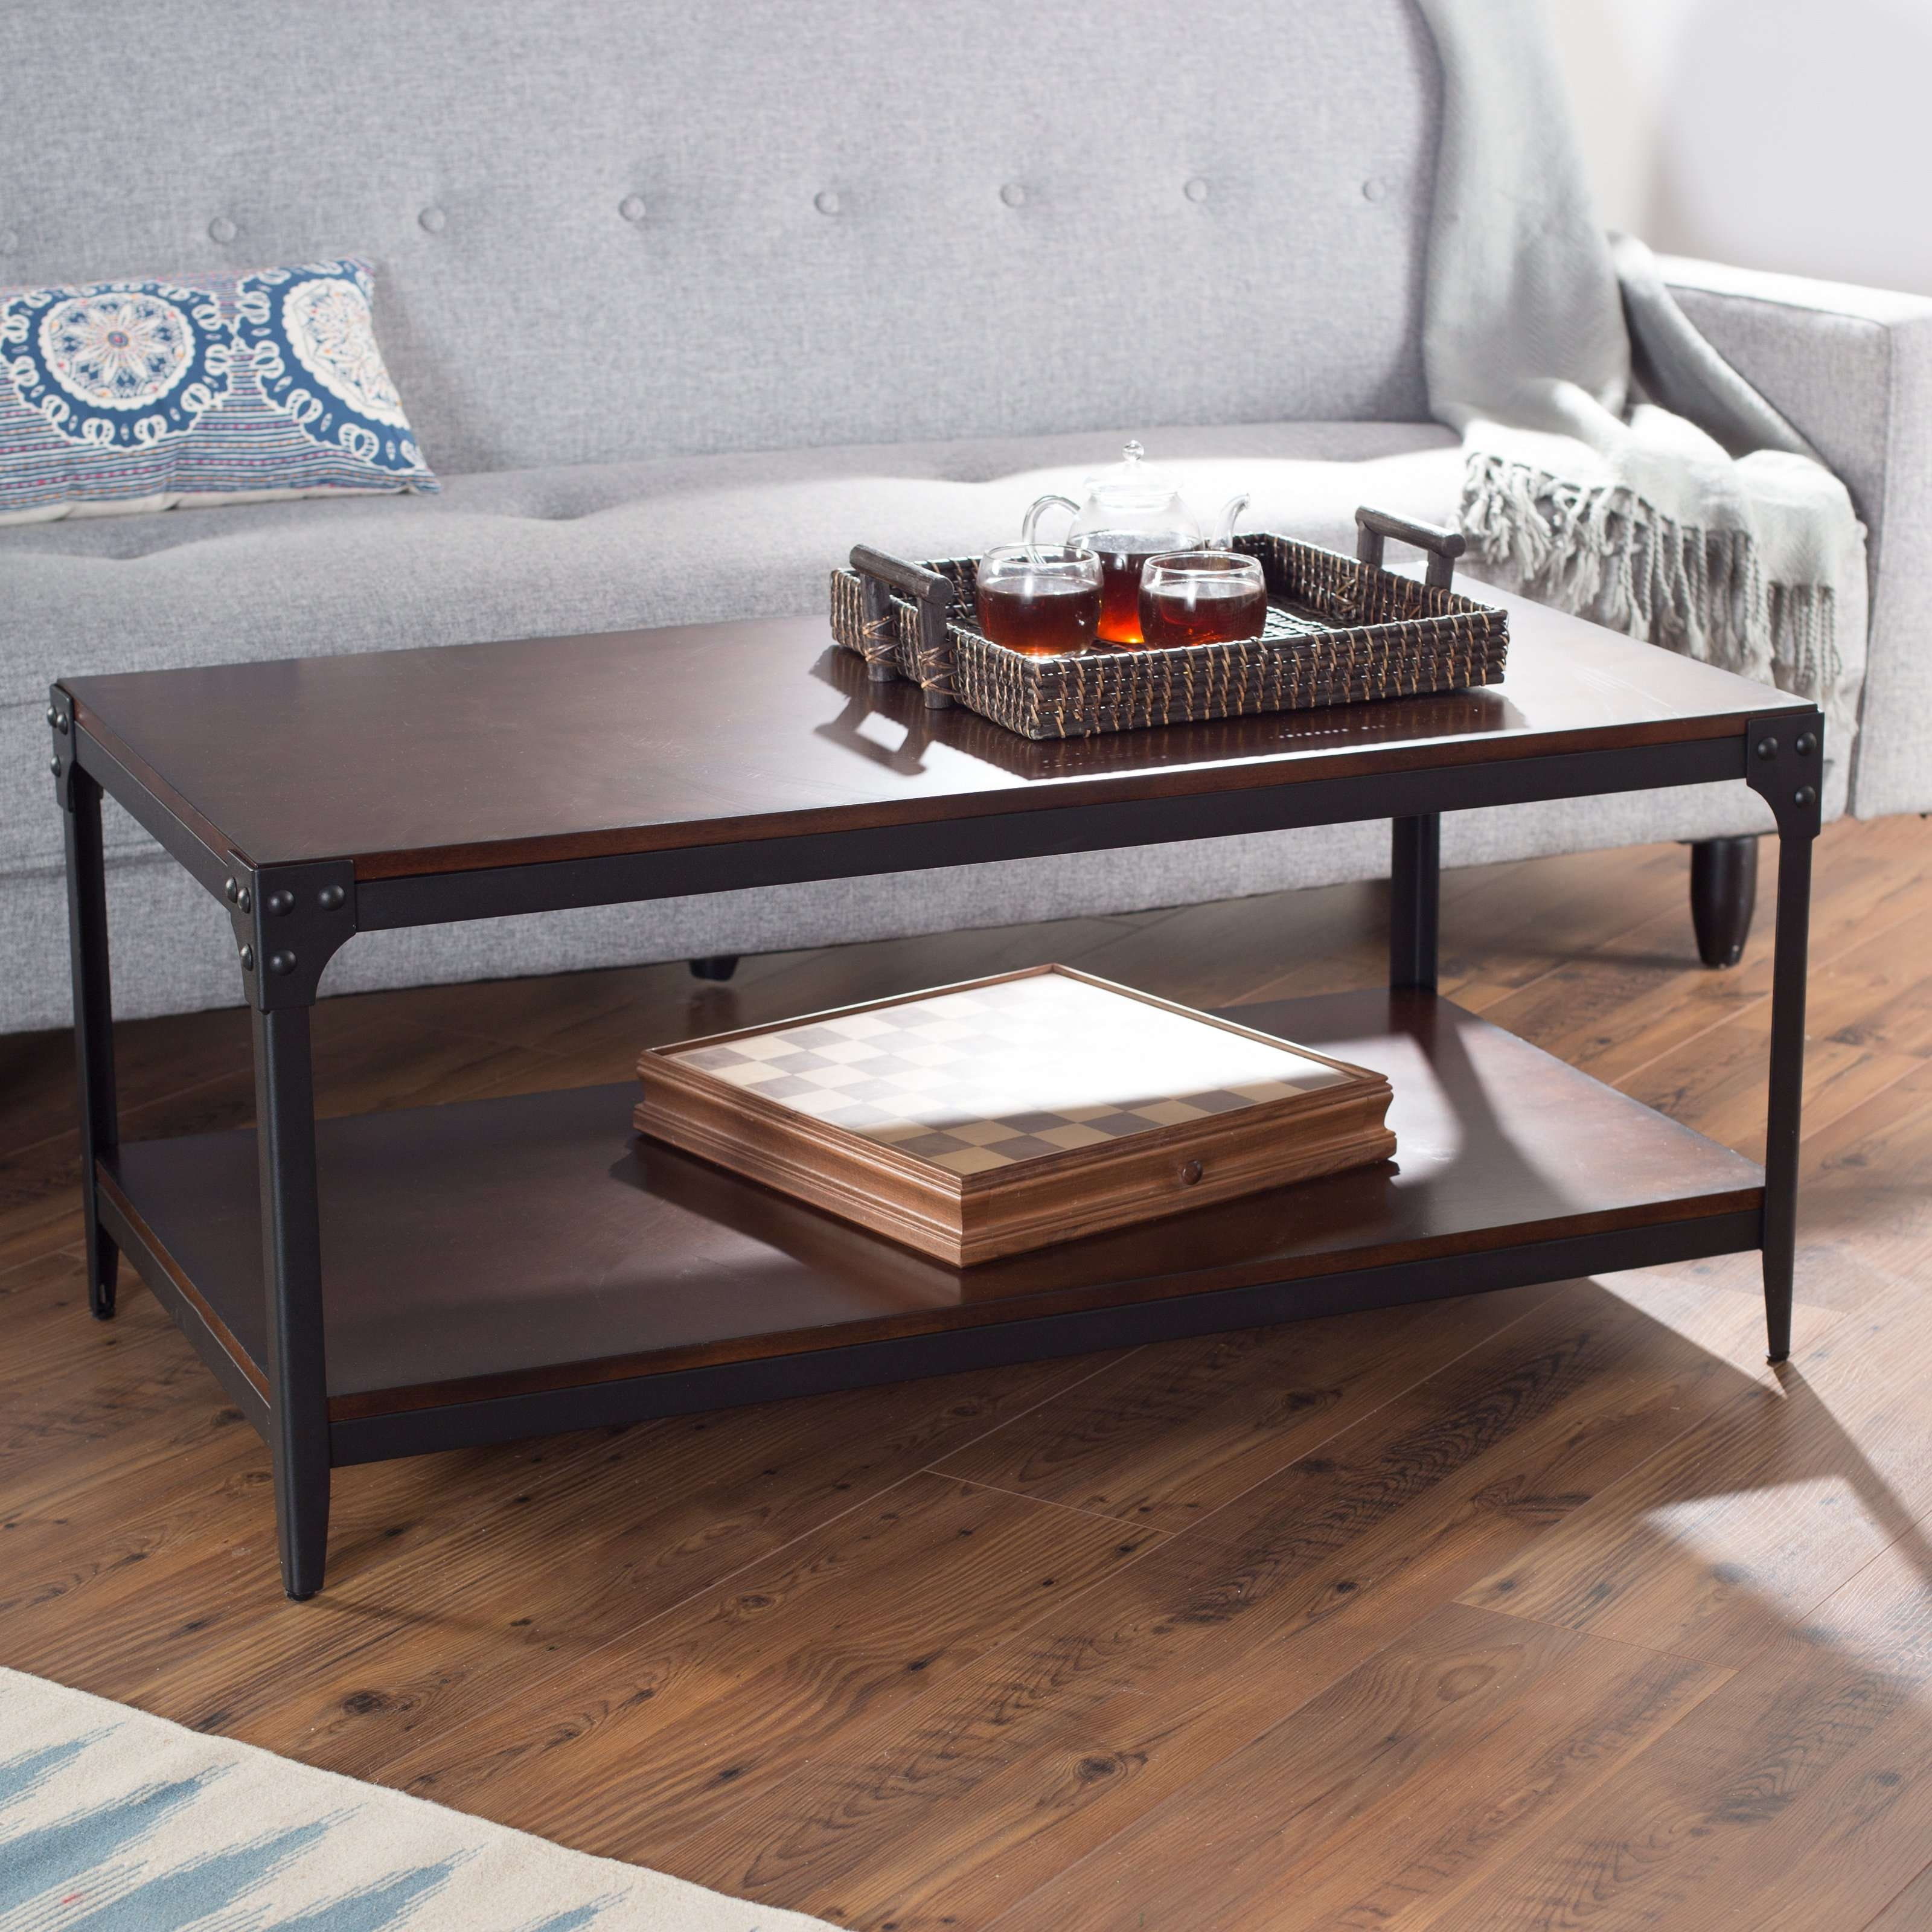 Belham Living Trenton Industrial Coffee Table – Espresso – Walmart Throughout 2018 Espresso Coffee Tables (View 1 of 20)